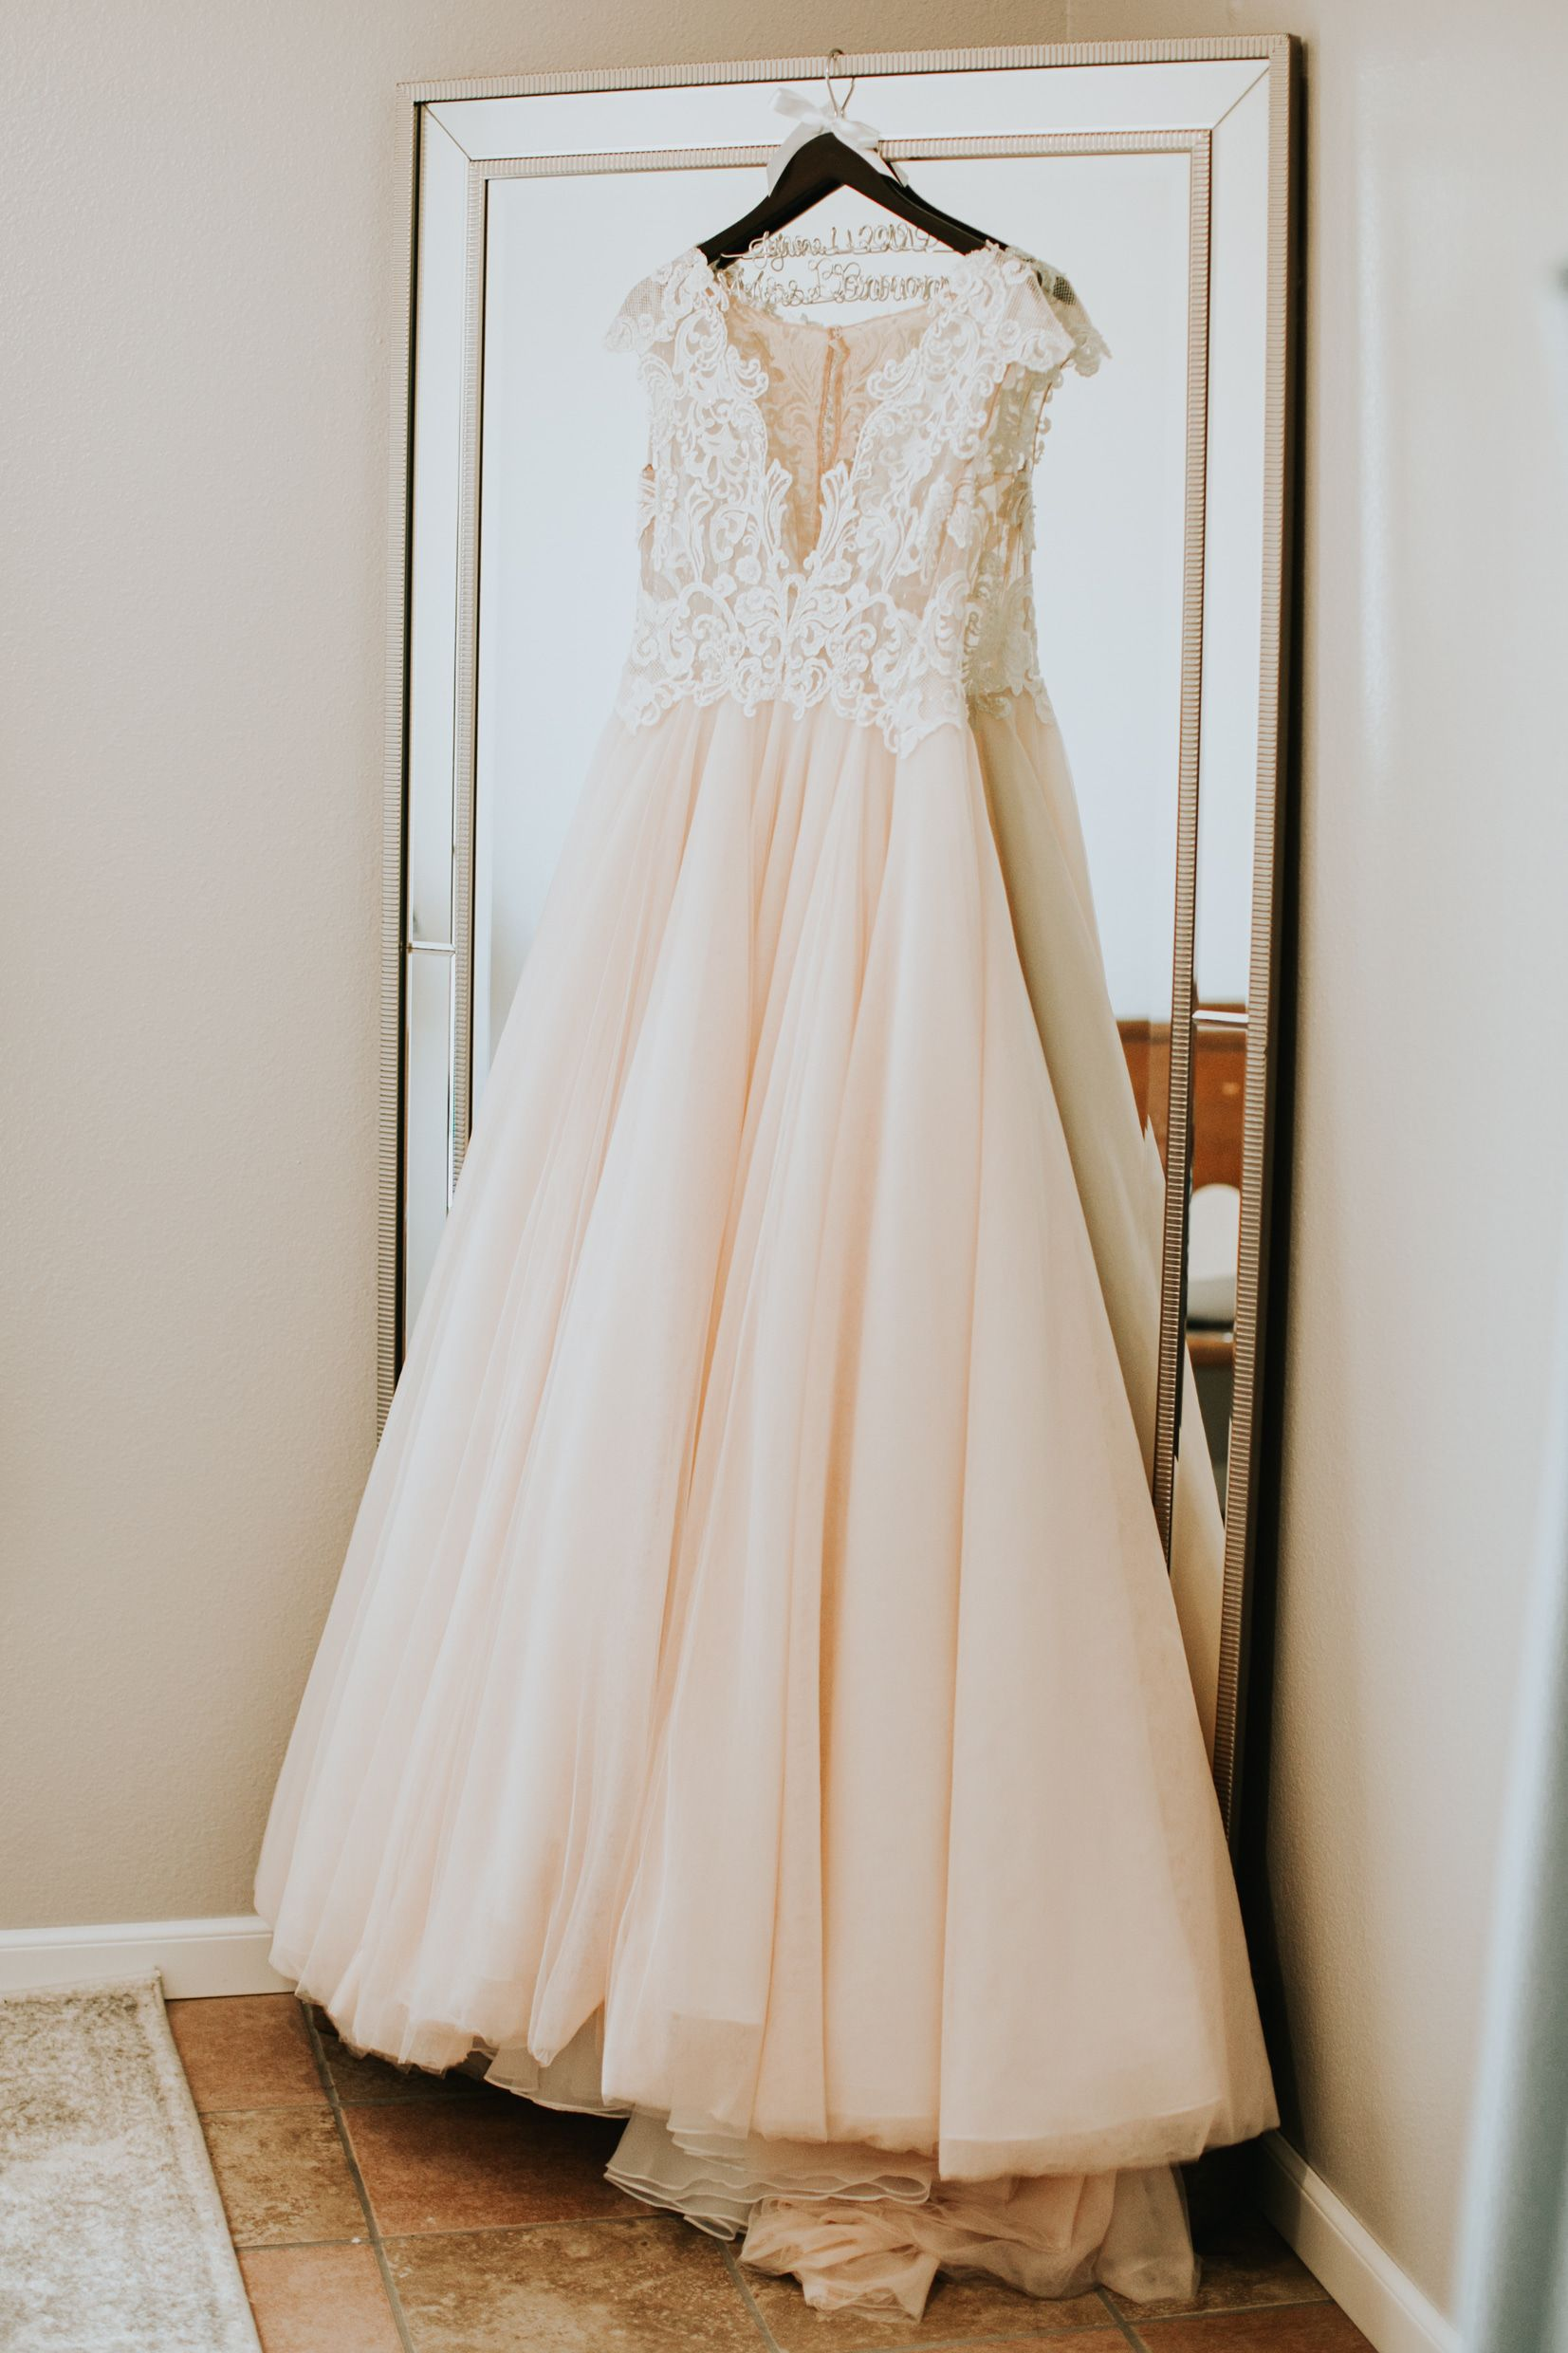 Gorgeous Lace Wedding Dress For Elegant Spring Wedding In Kansas City Mo Photo By The Bold Americana Weddin Wedding Dresses Lace Wedding Dresses Bride Style